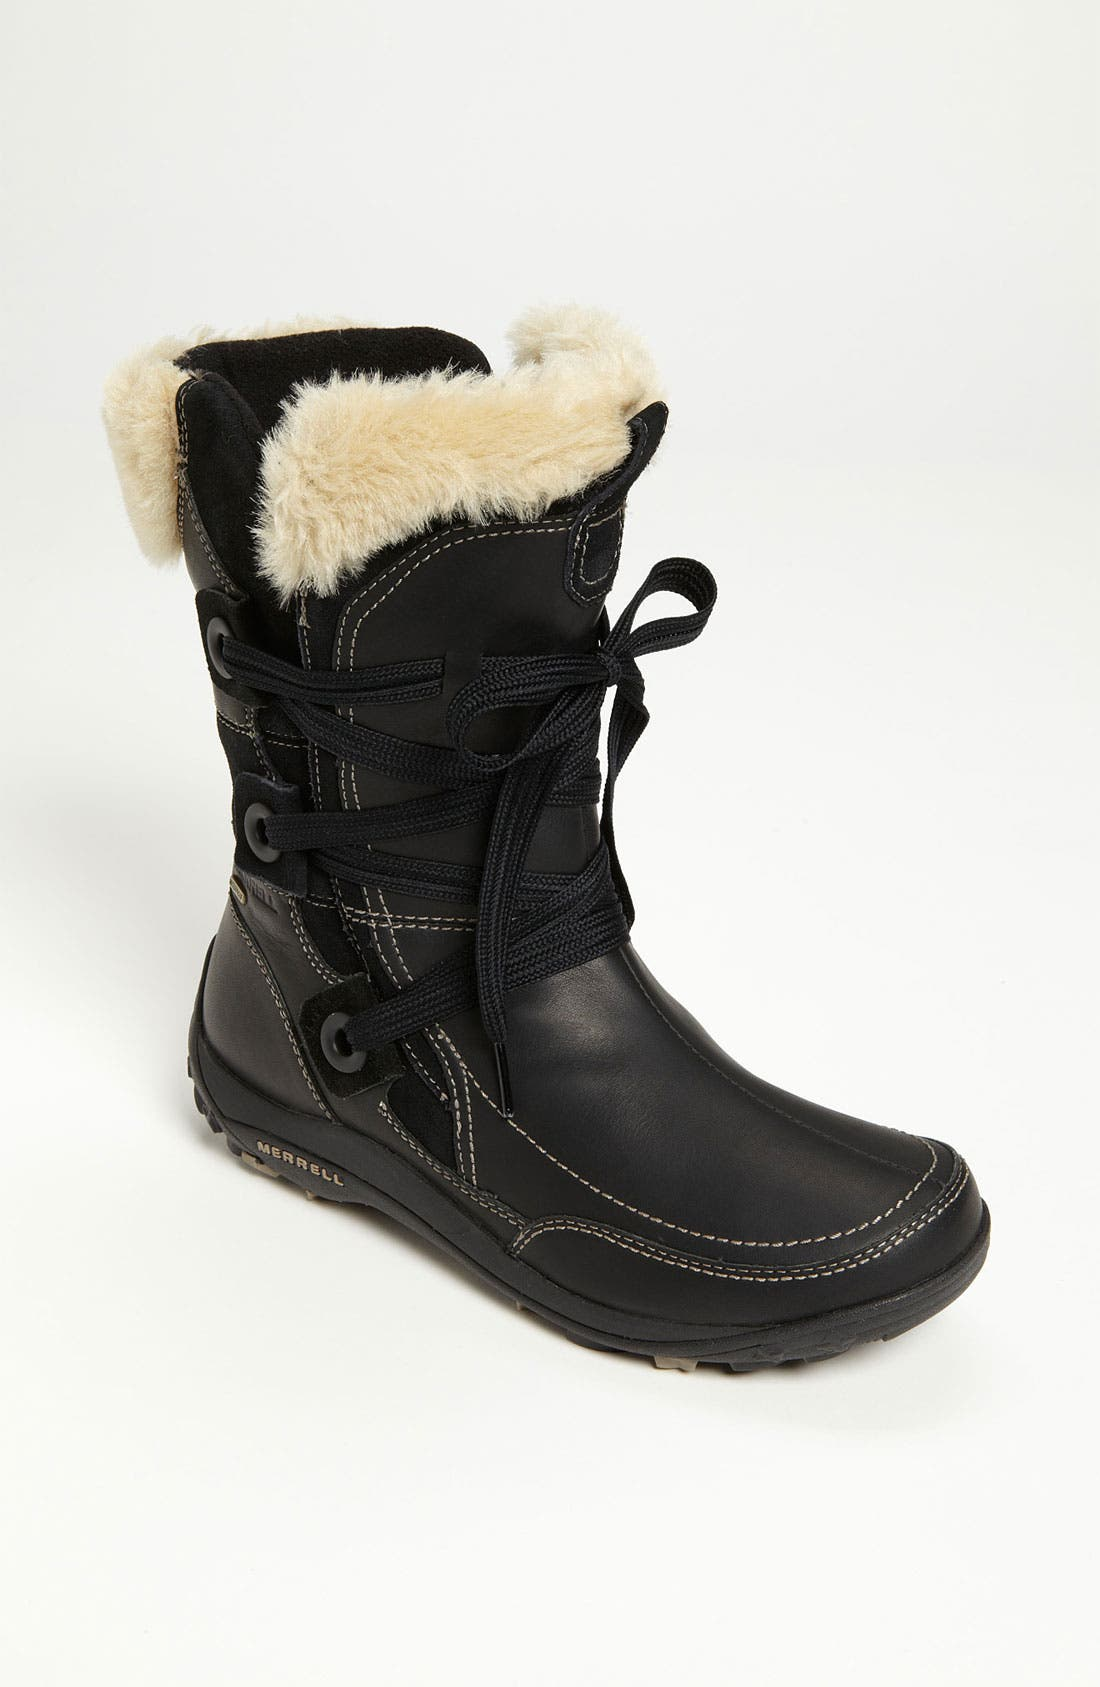 Alternate Image 1 Selected - Merrell 'Nikita' Waterproof Boot